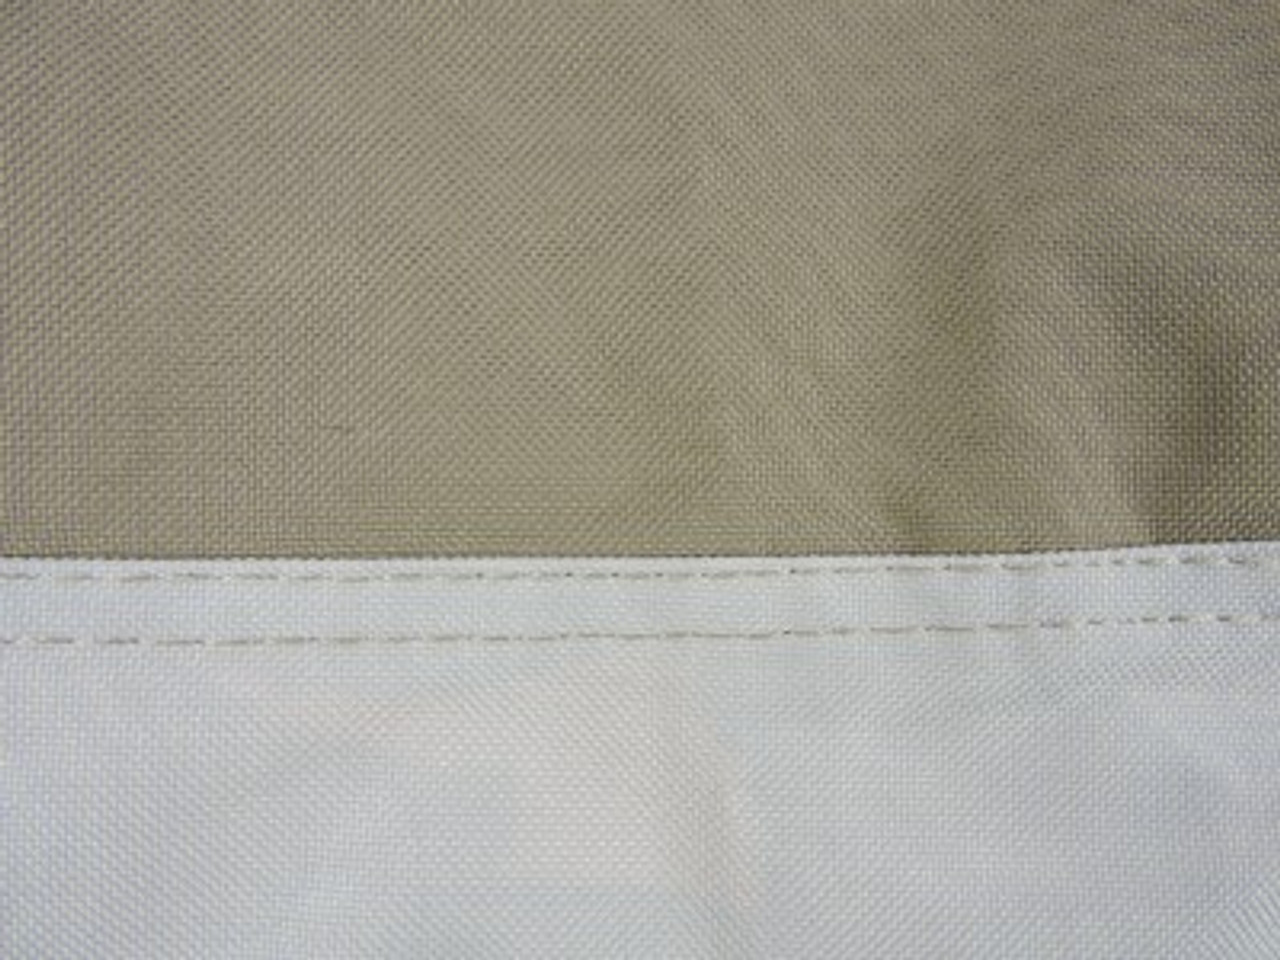 Savanna 600D double stitched oxford cloth exterior treated for UV resistance